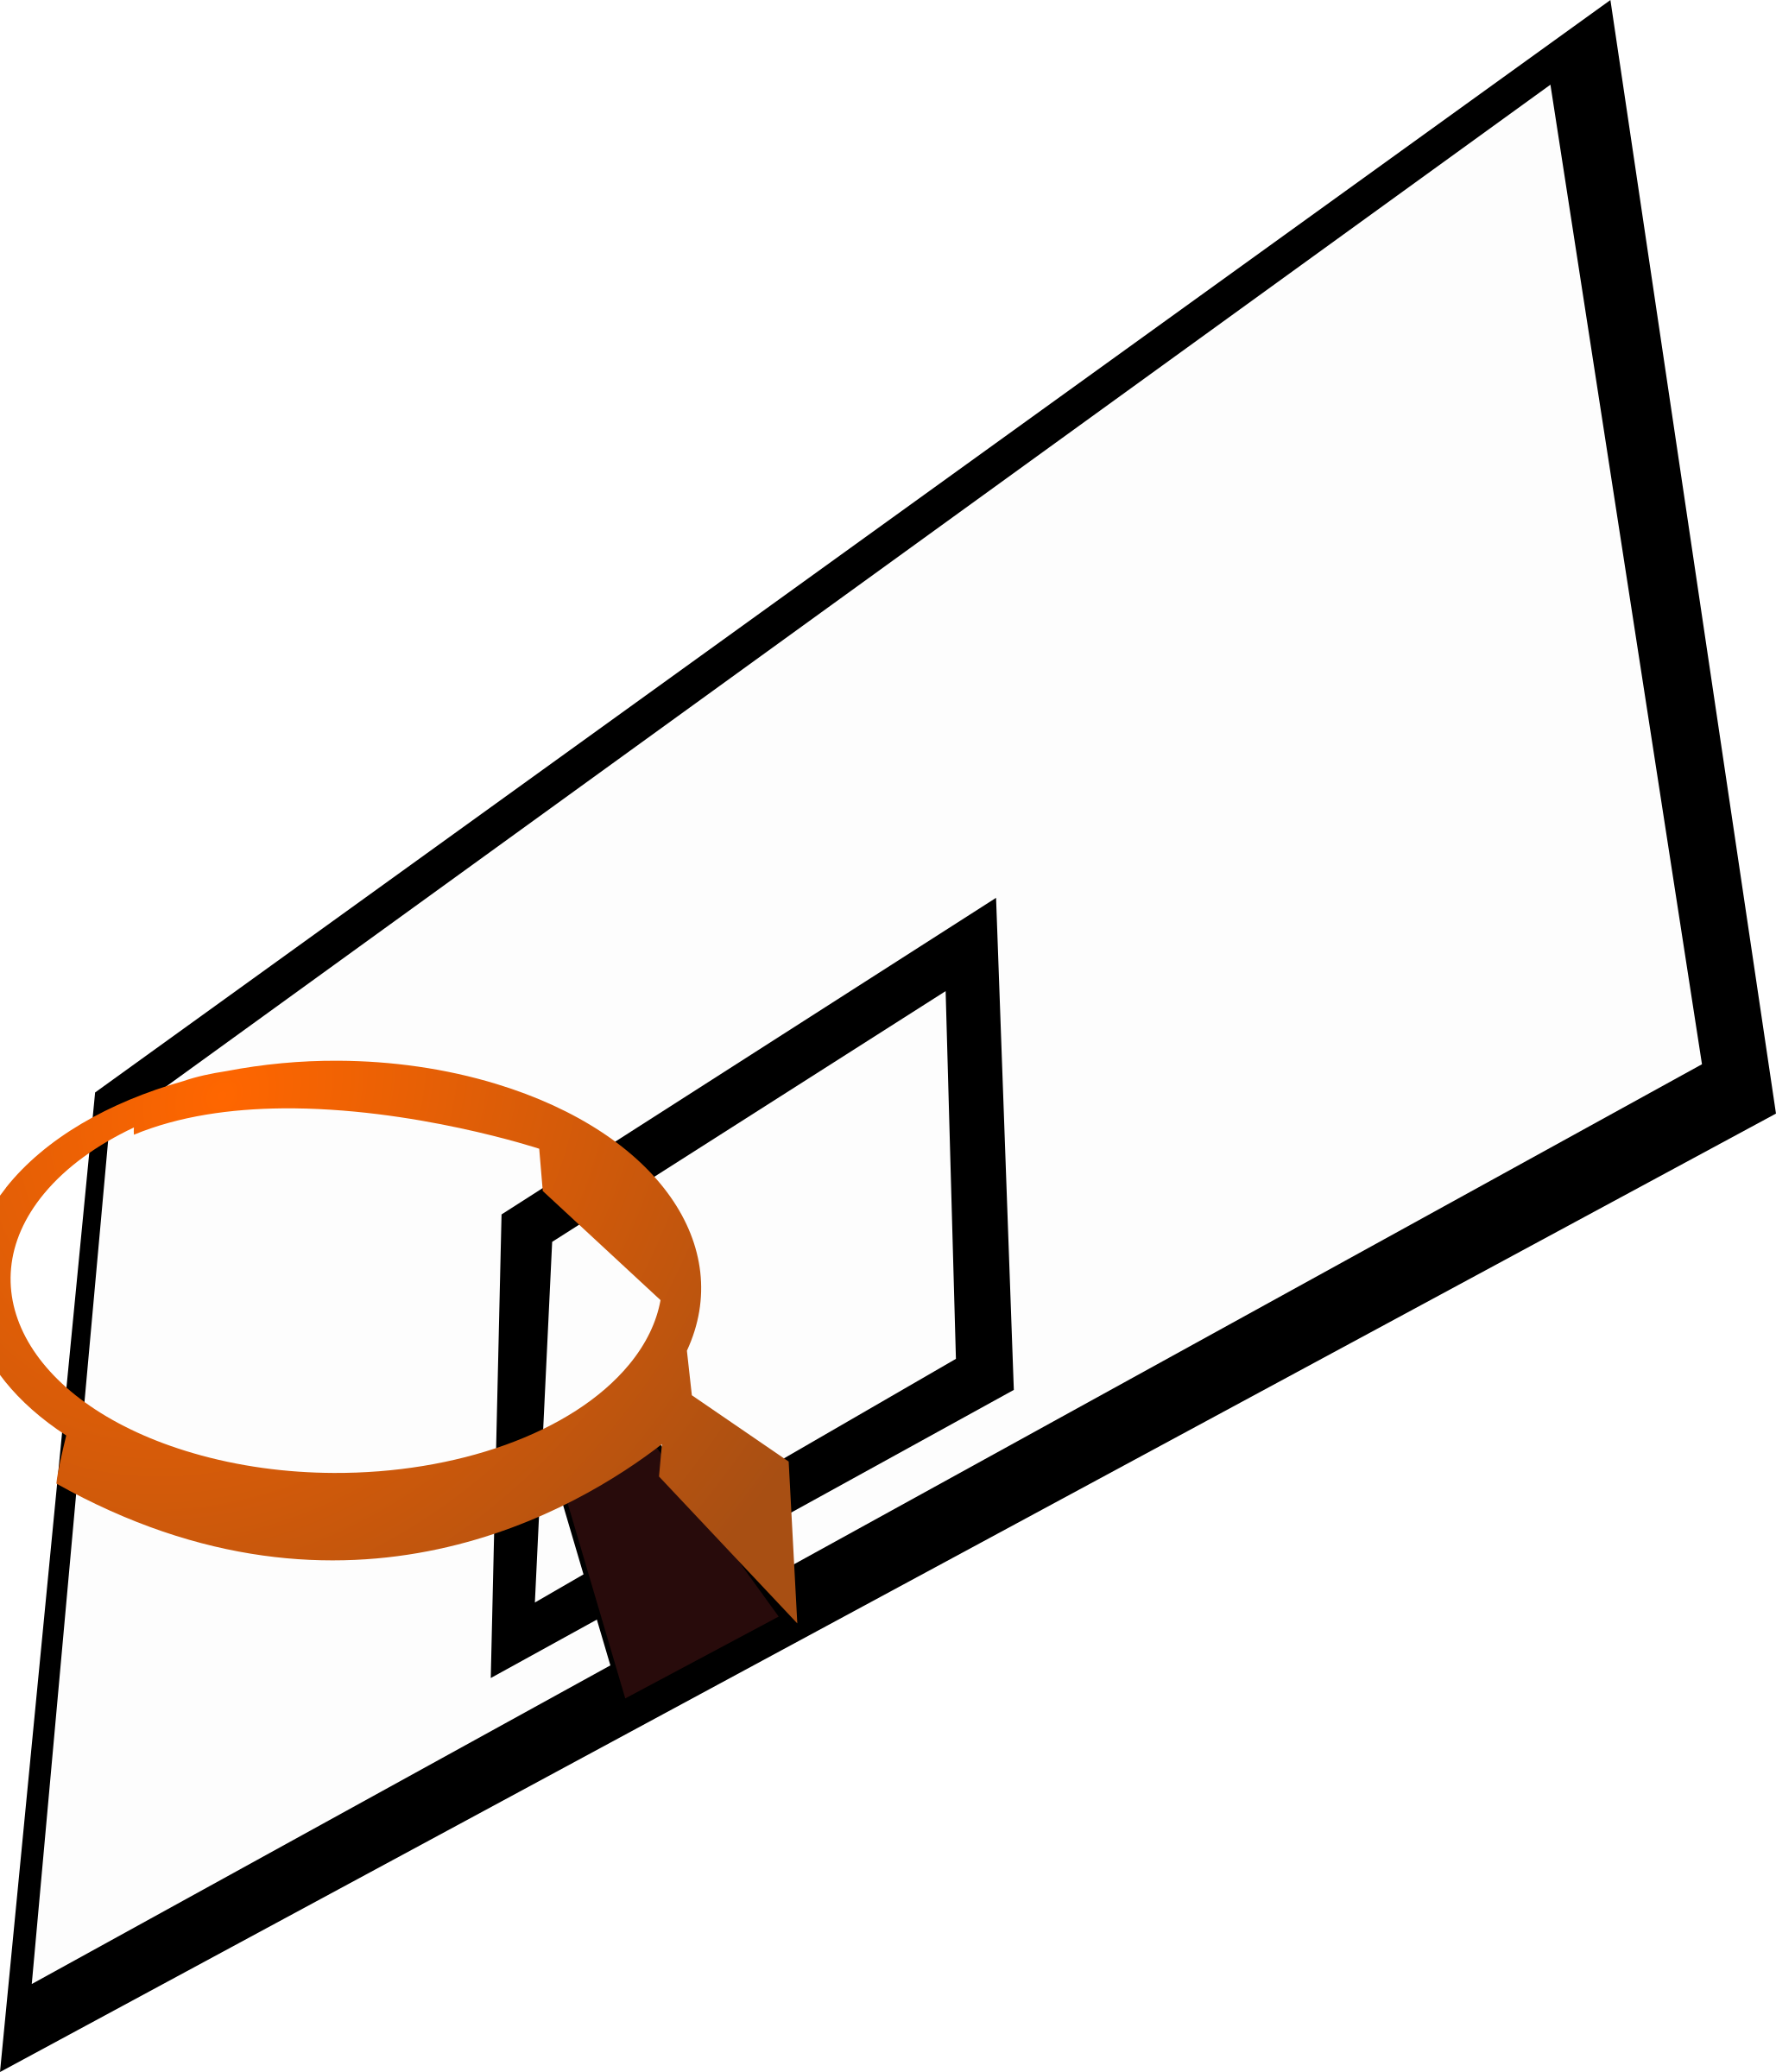 Basketball rim by Gioppino